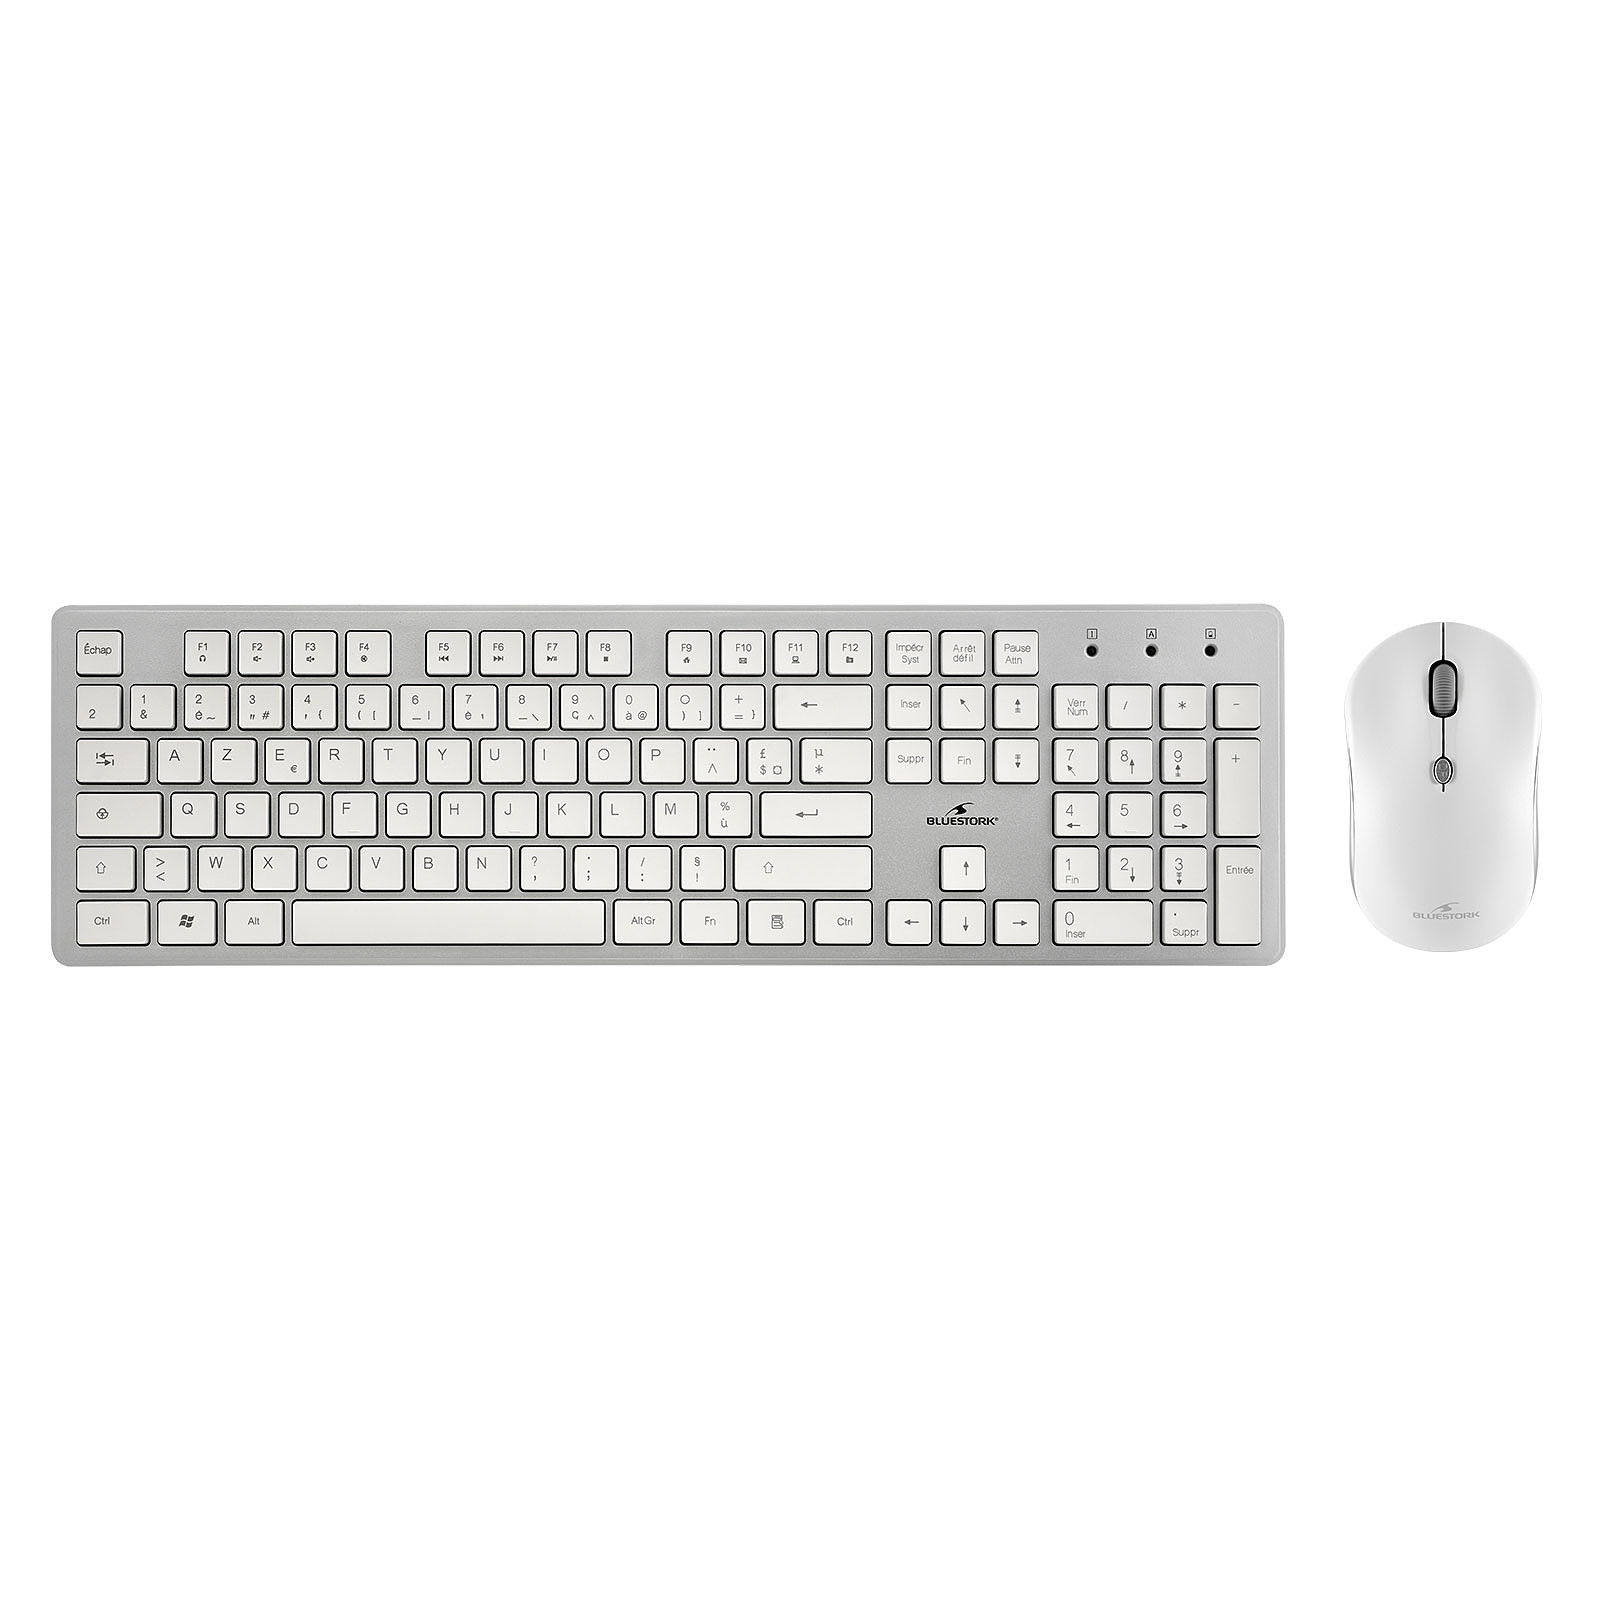 Wireless Pack Easy II-N Blanc/Silver (PACK-EASY-II-N/FR) - Achat / Vente Pack Clavier/Souris sur Picata.fr - 0